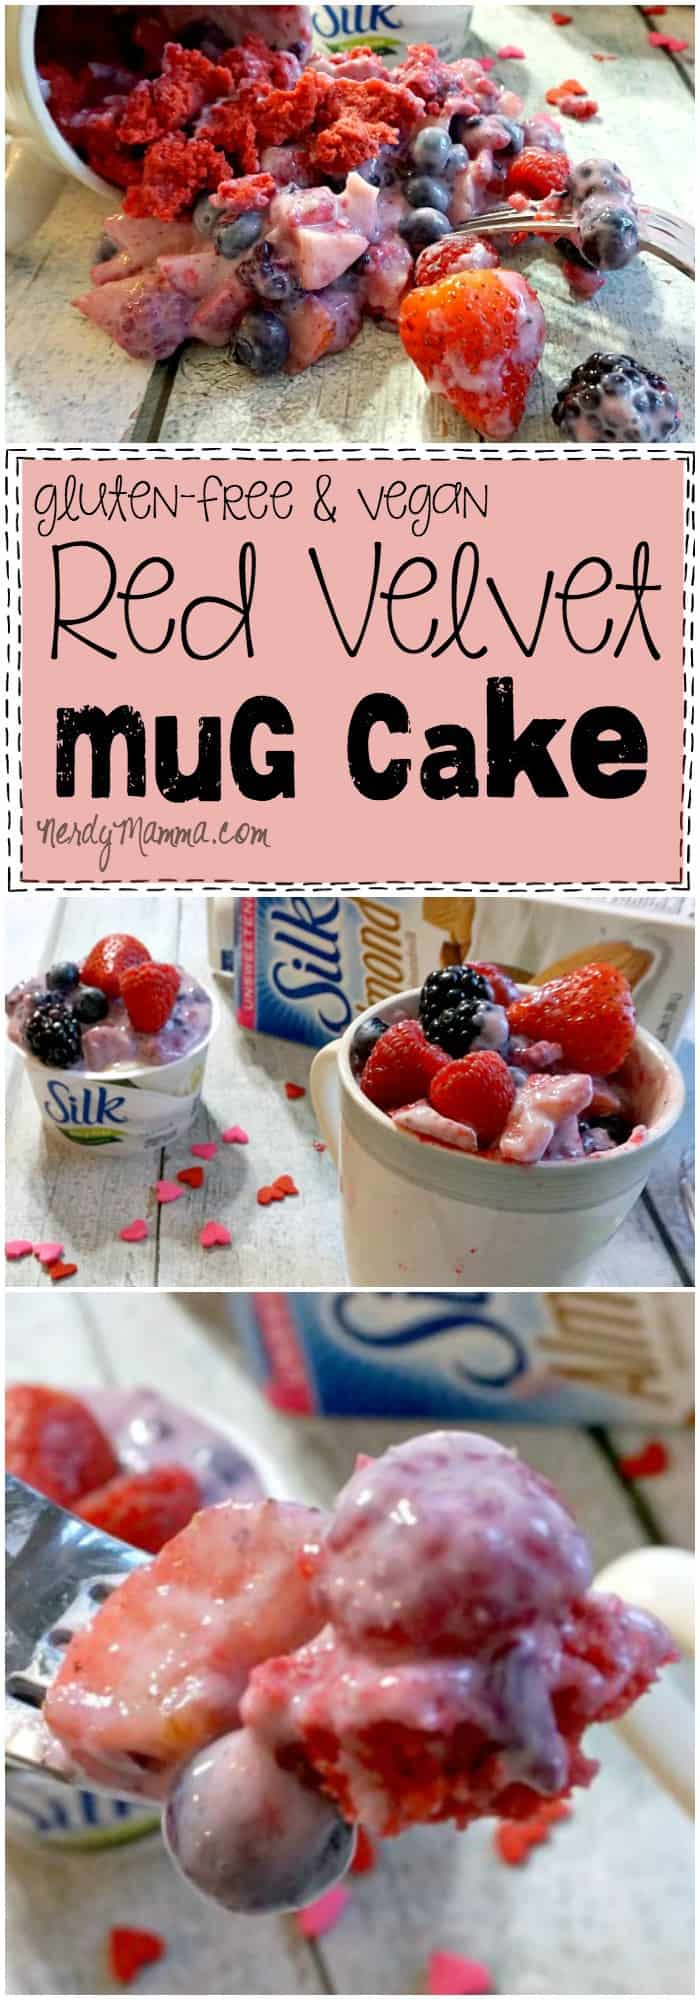 This recipe for a single-serve gluten-free and dairy-free red velvet mug cake looks so delicious. I love the idea...have to try it!